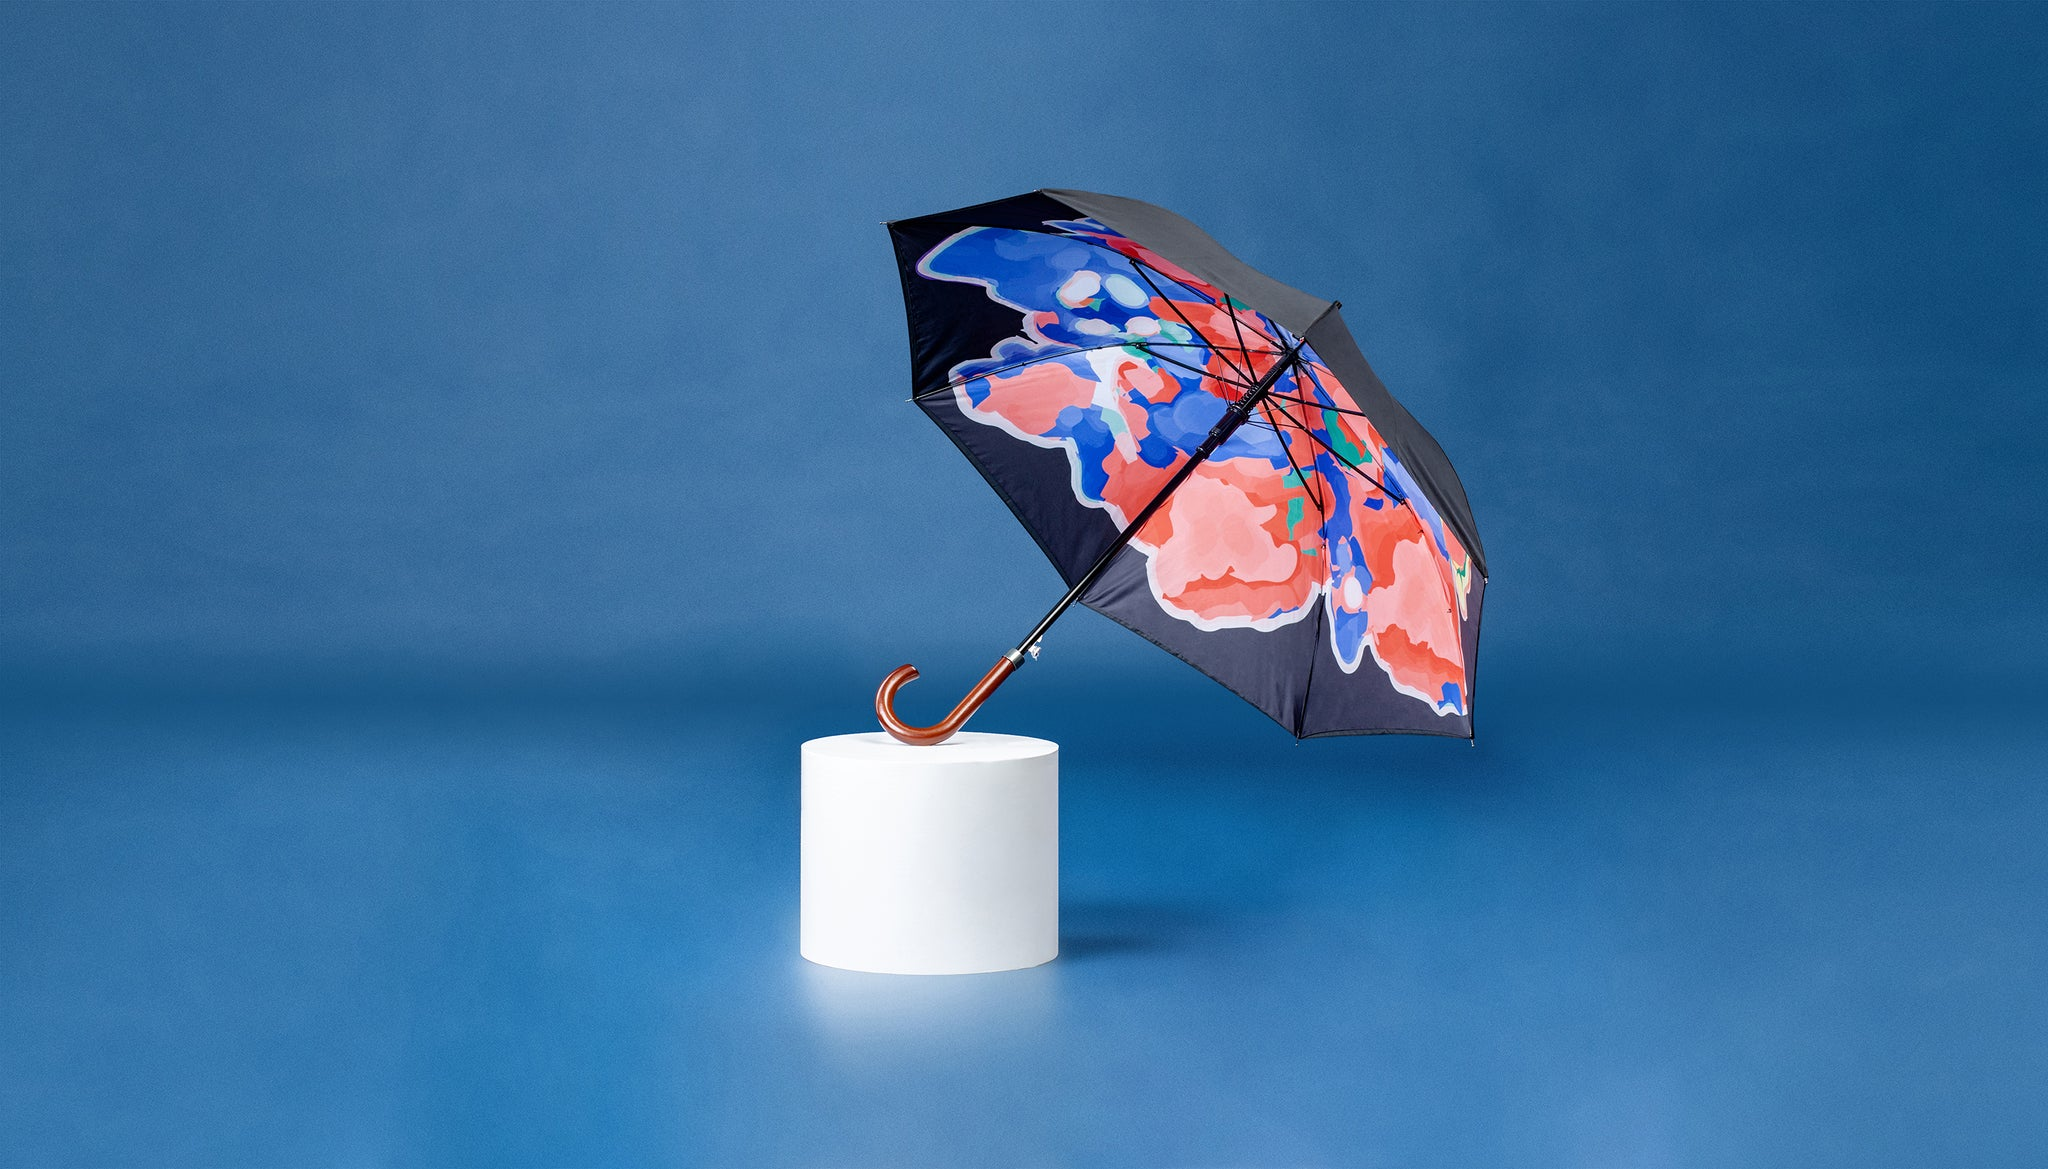 Premium Art Umbrella from Sweden / Design paraply från Stockholm / online product available / free delivery / Wonderful Cloud - Straight Art Umbrella - zontjkdesign